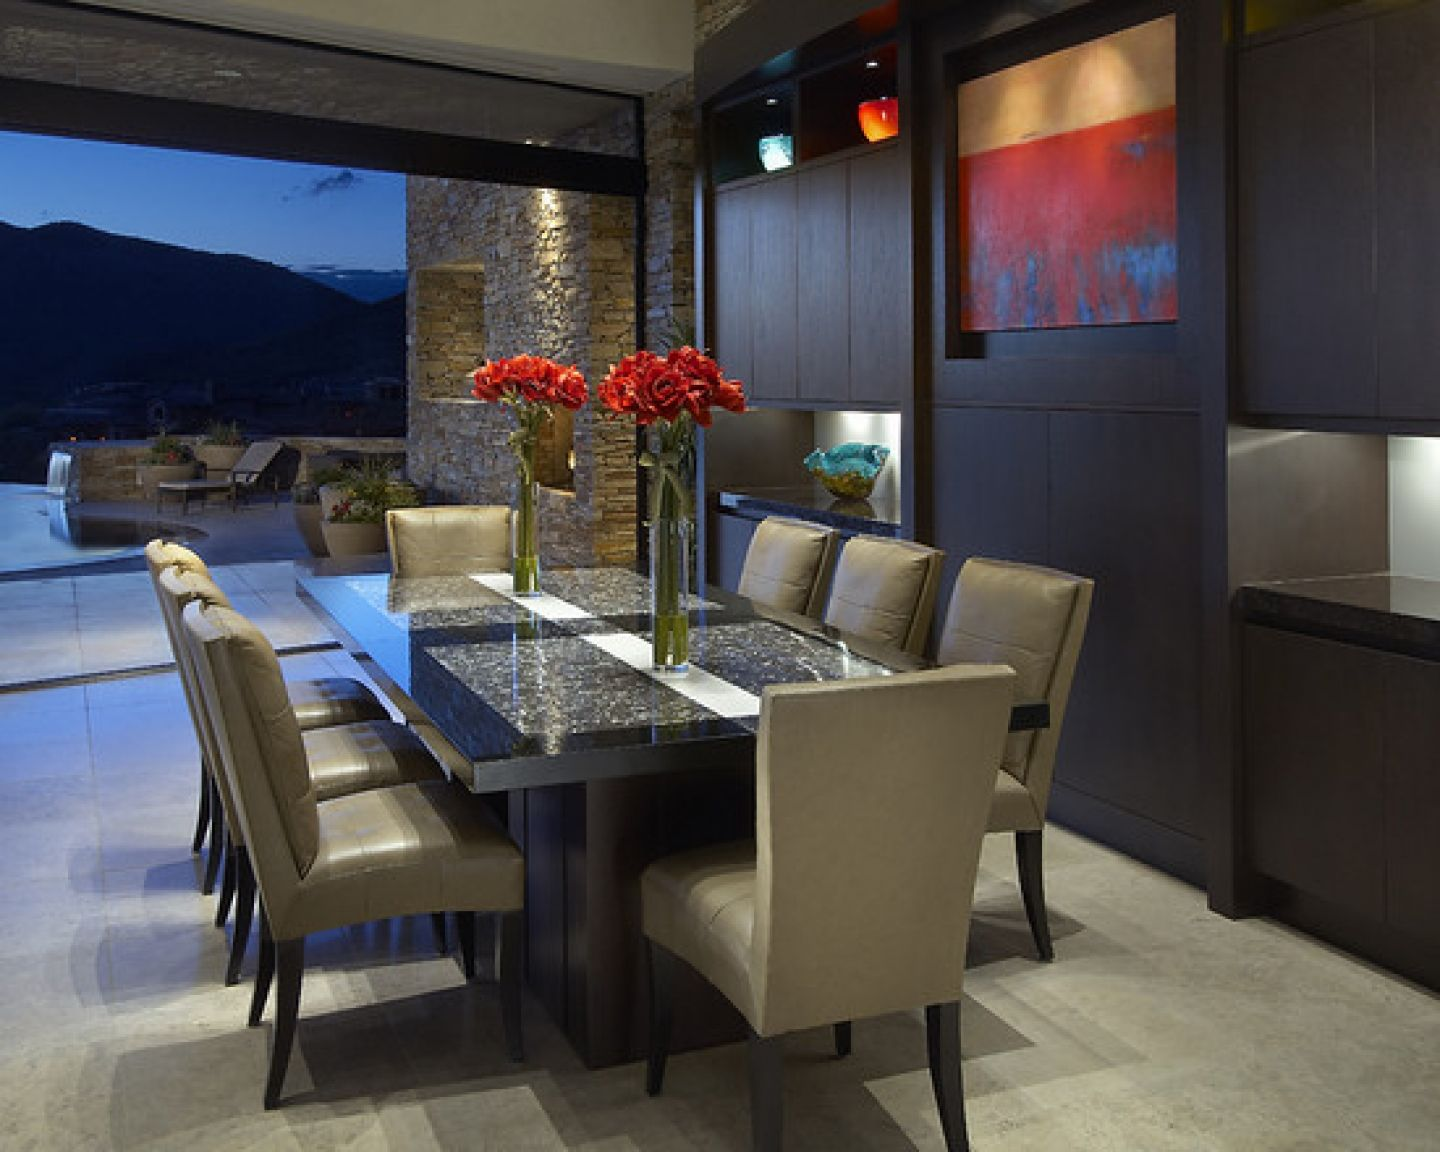 Design Decor | ... Dining Room Design Pictures Remodel Decor And, 1440x1152  In 785.9KB